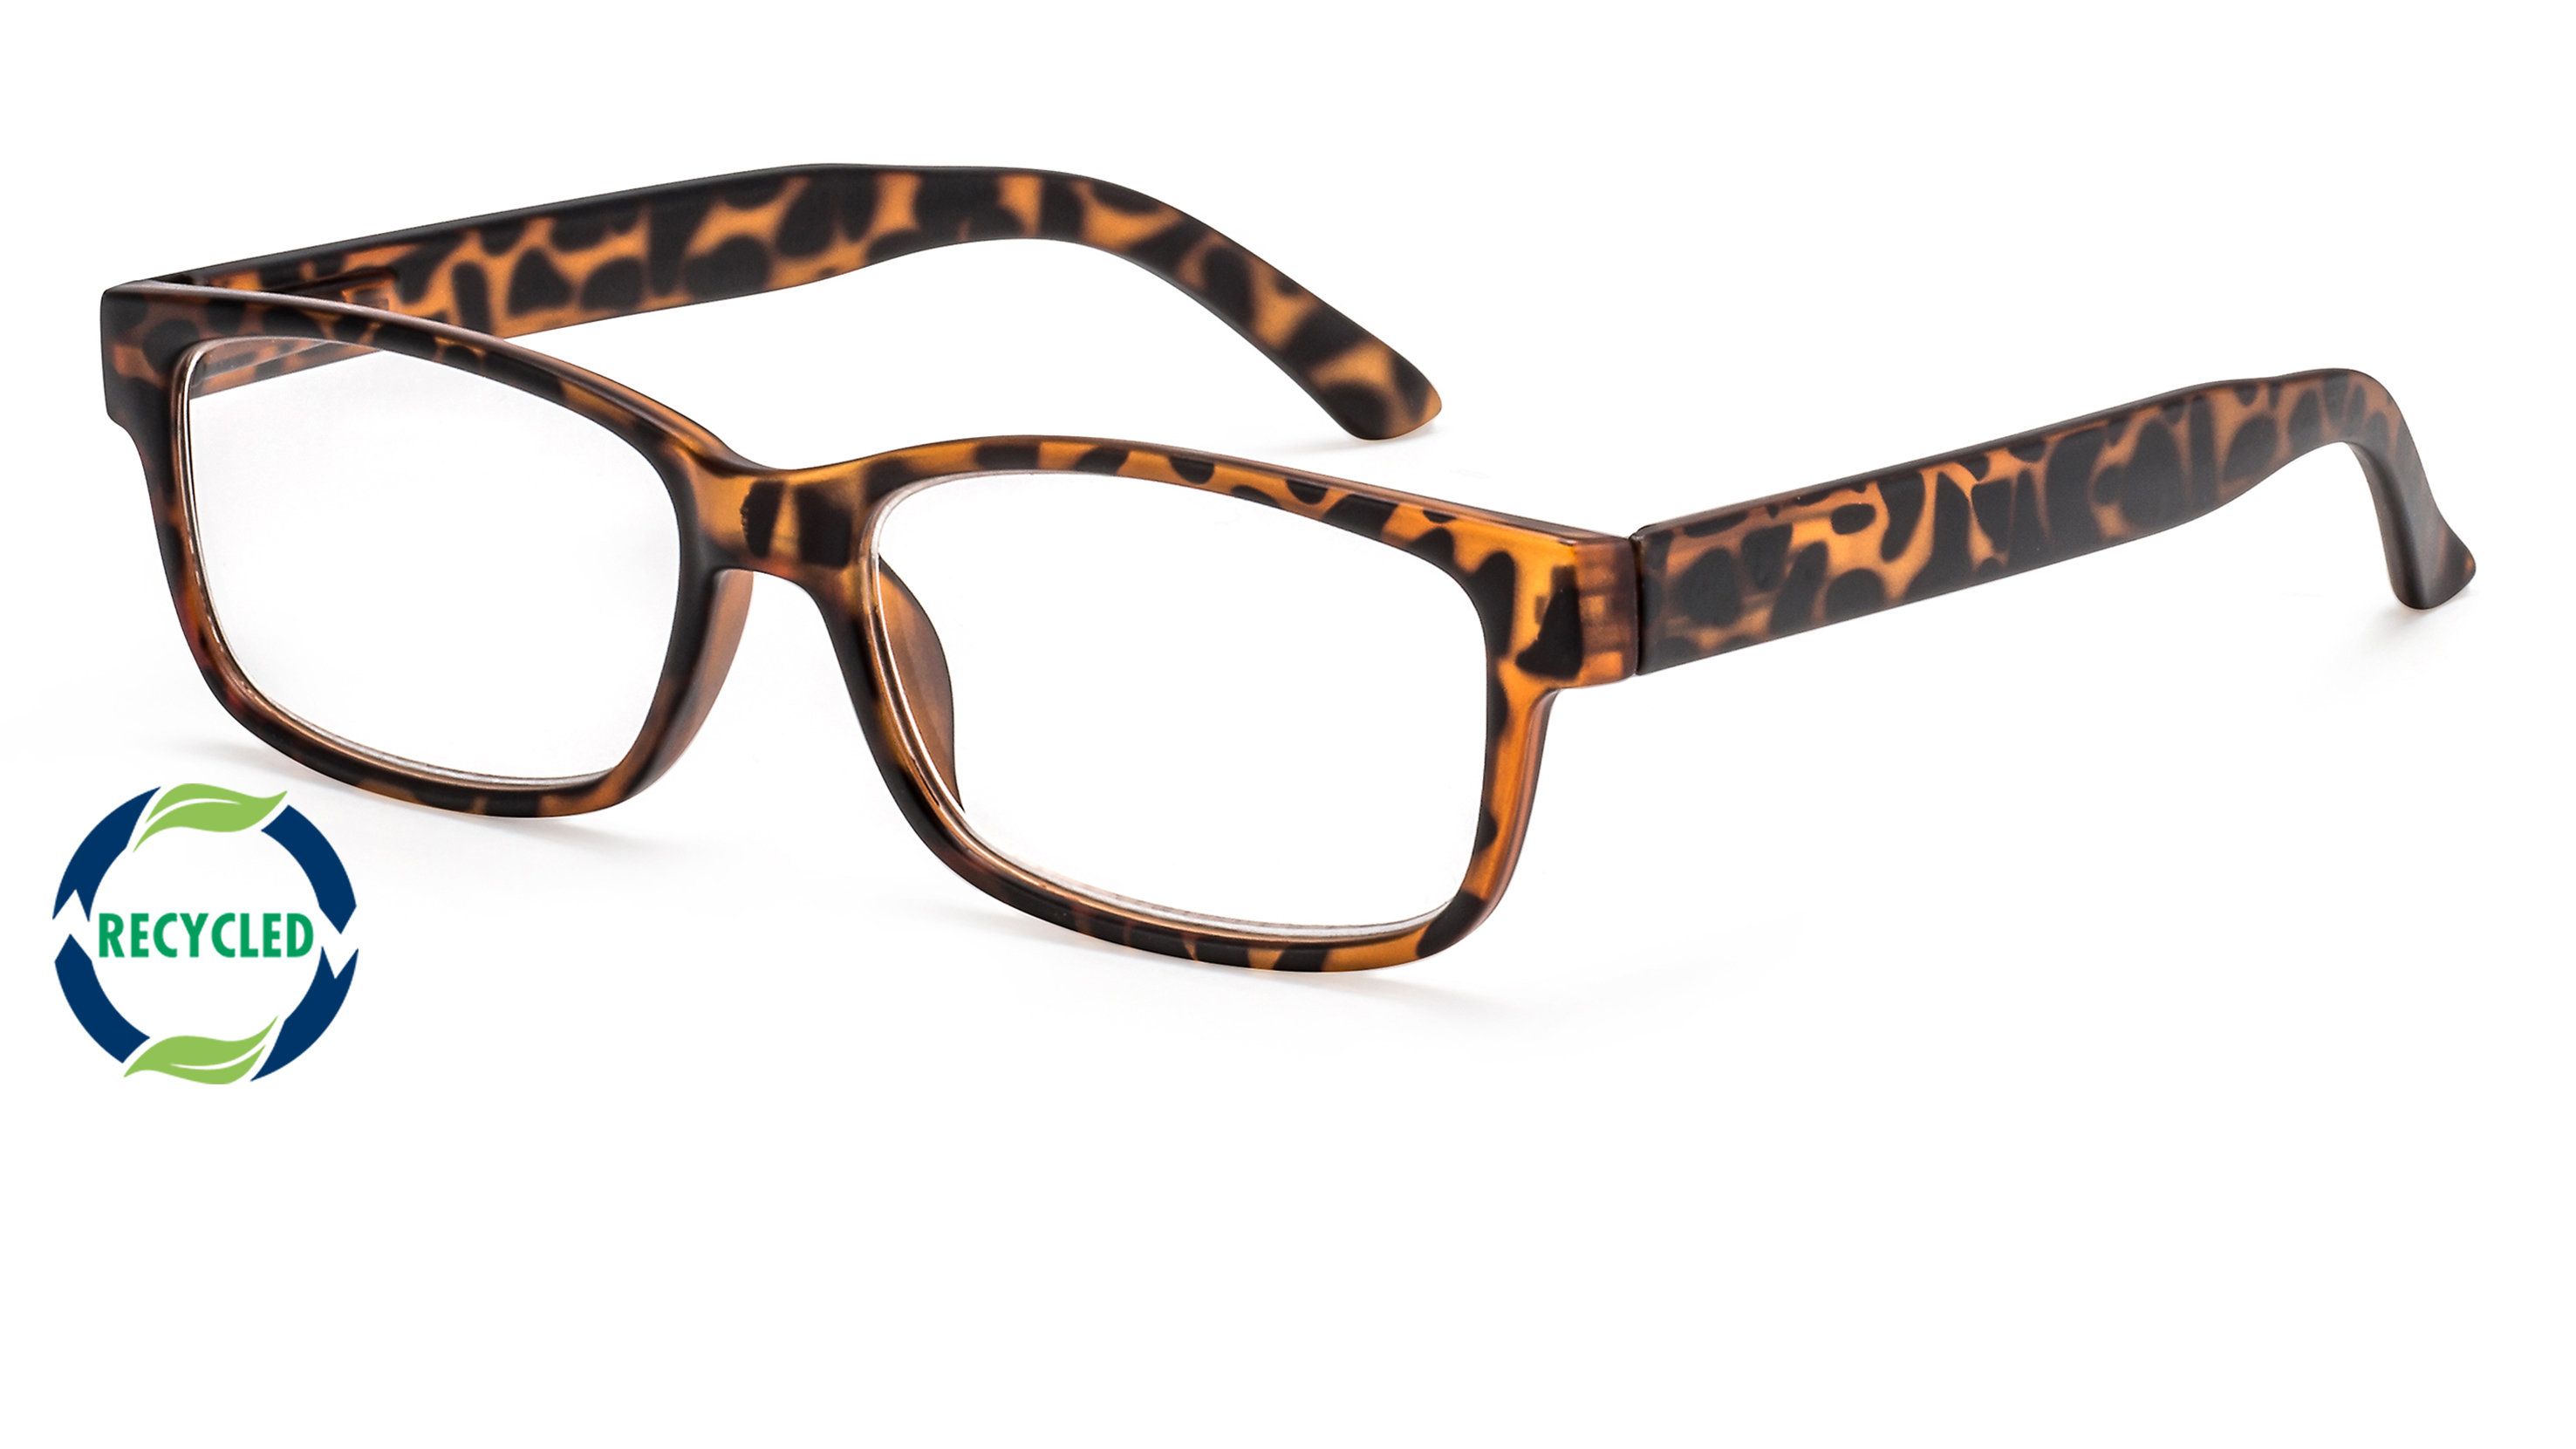 Filtral recycling reading glasses oslo brown